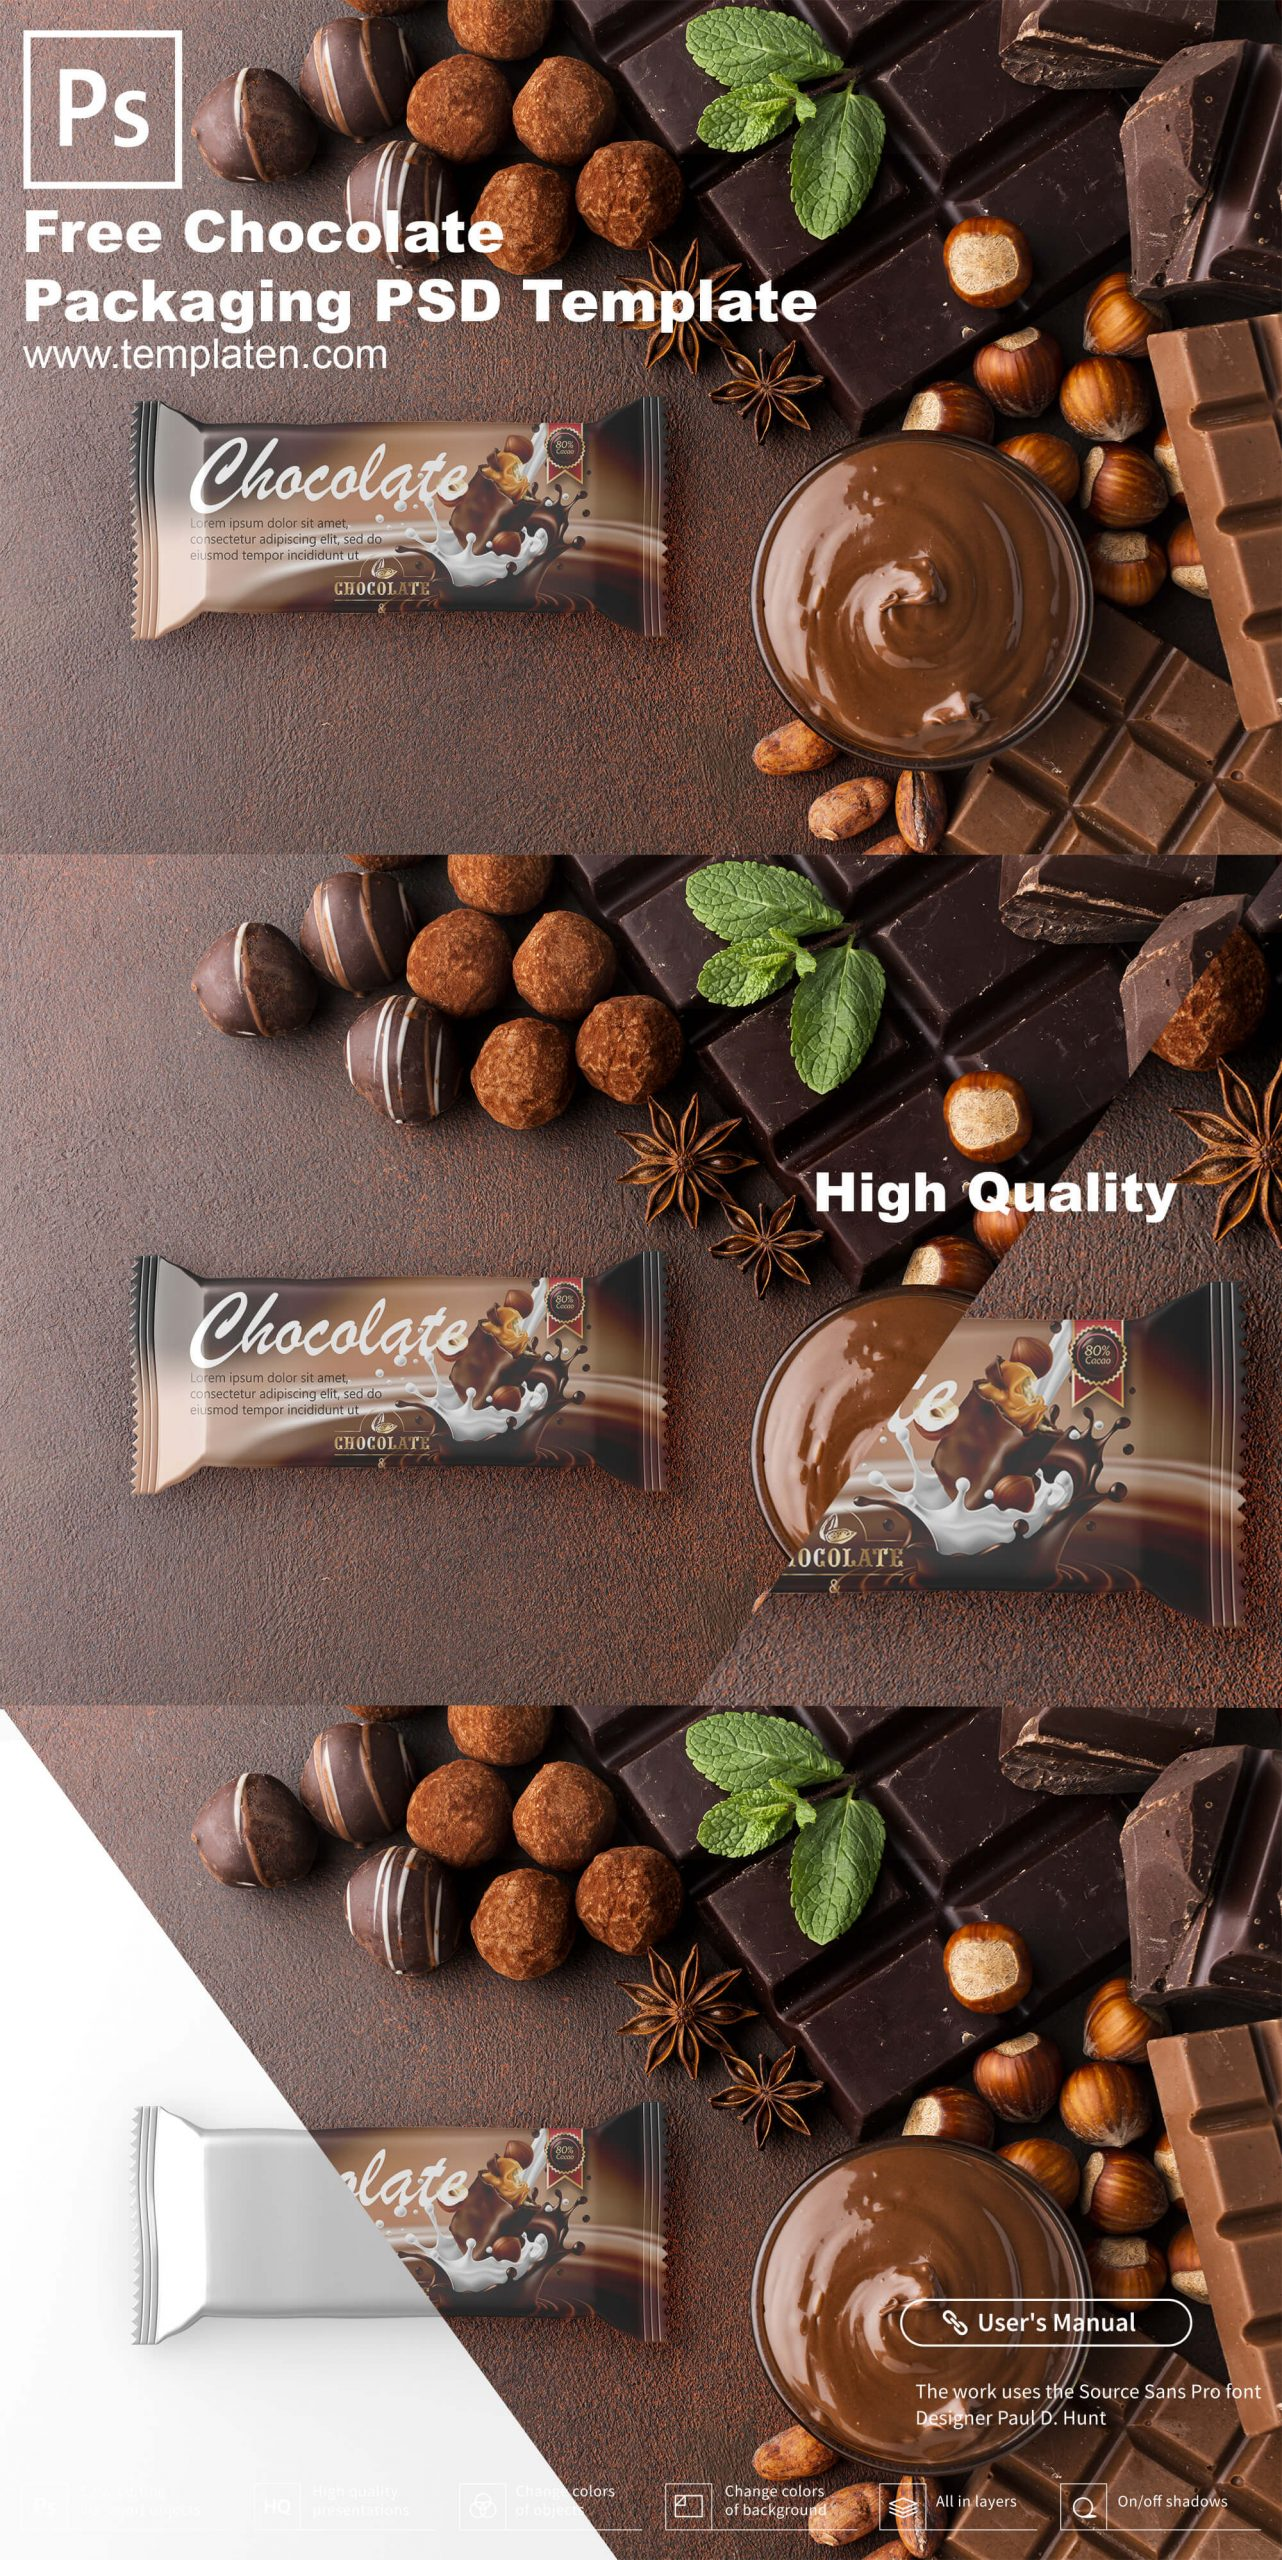 Free chocolate packaging PSD Template